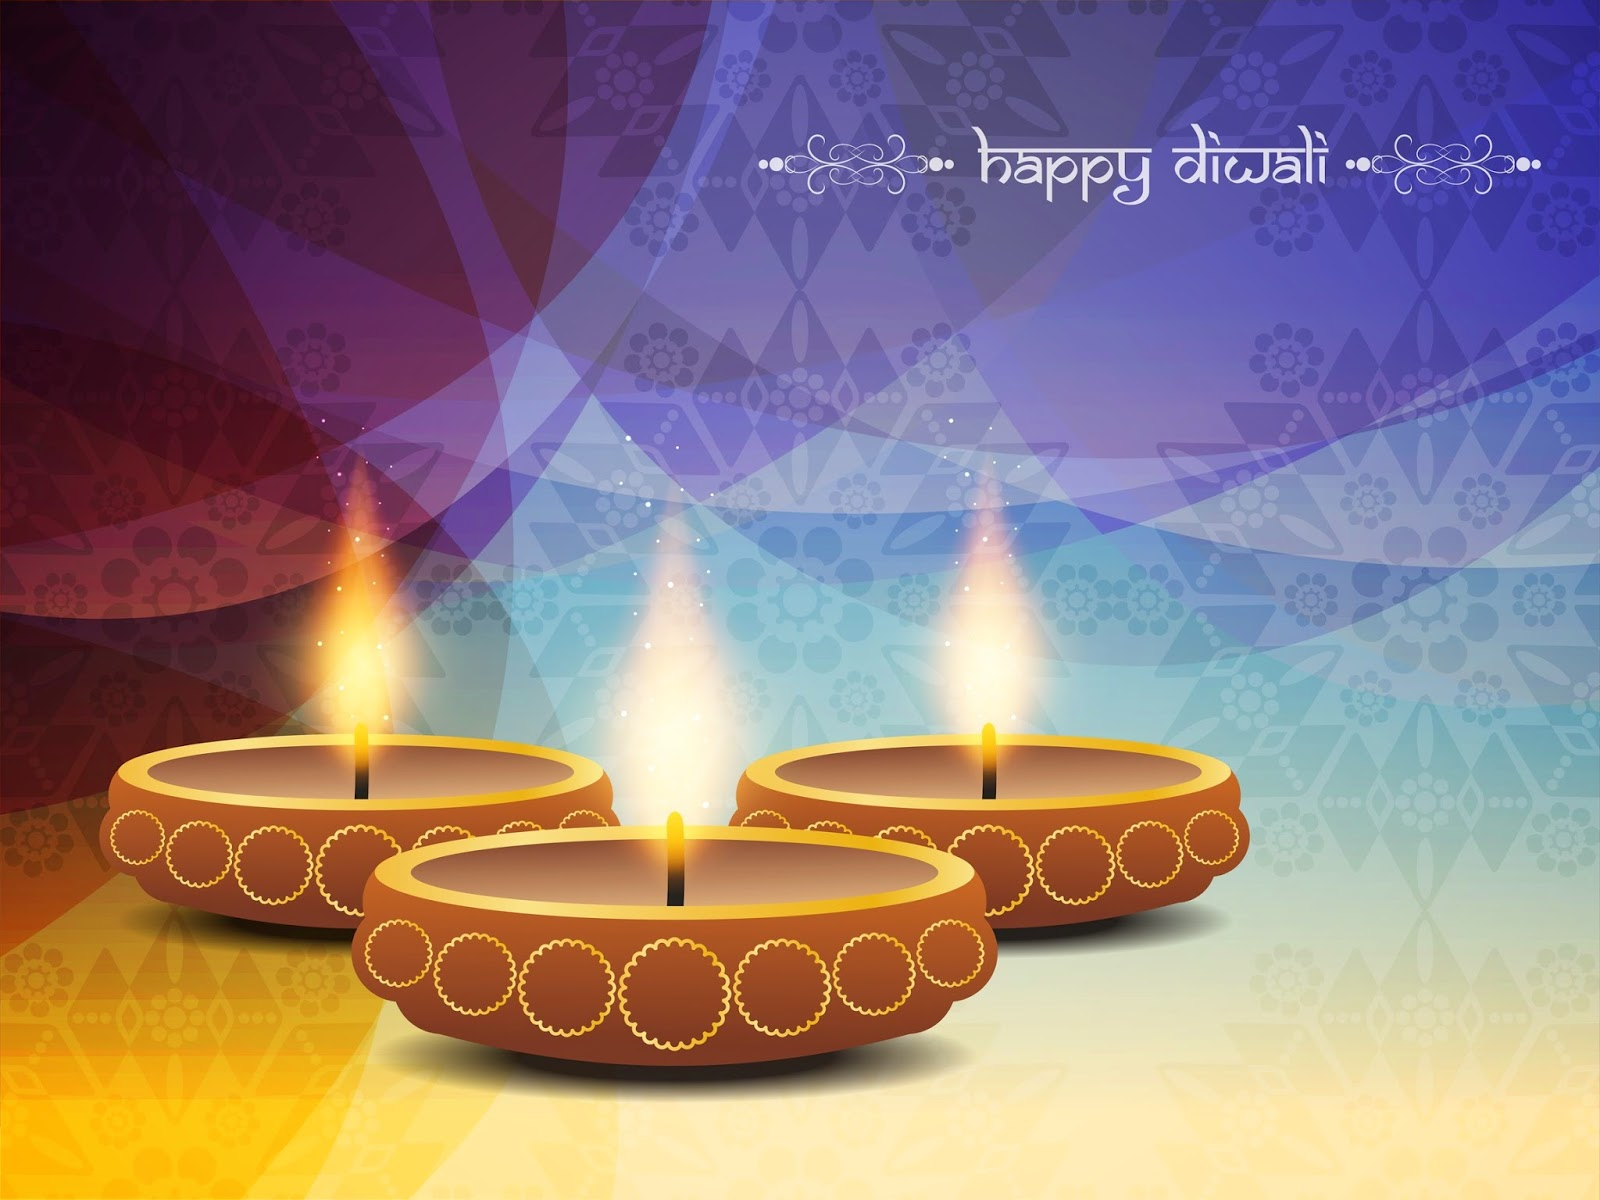 Wallpaper Best Happy Diwali The Latest Wallpaper